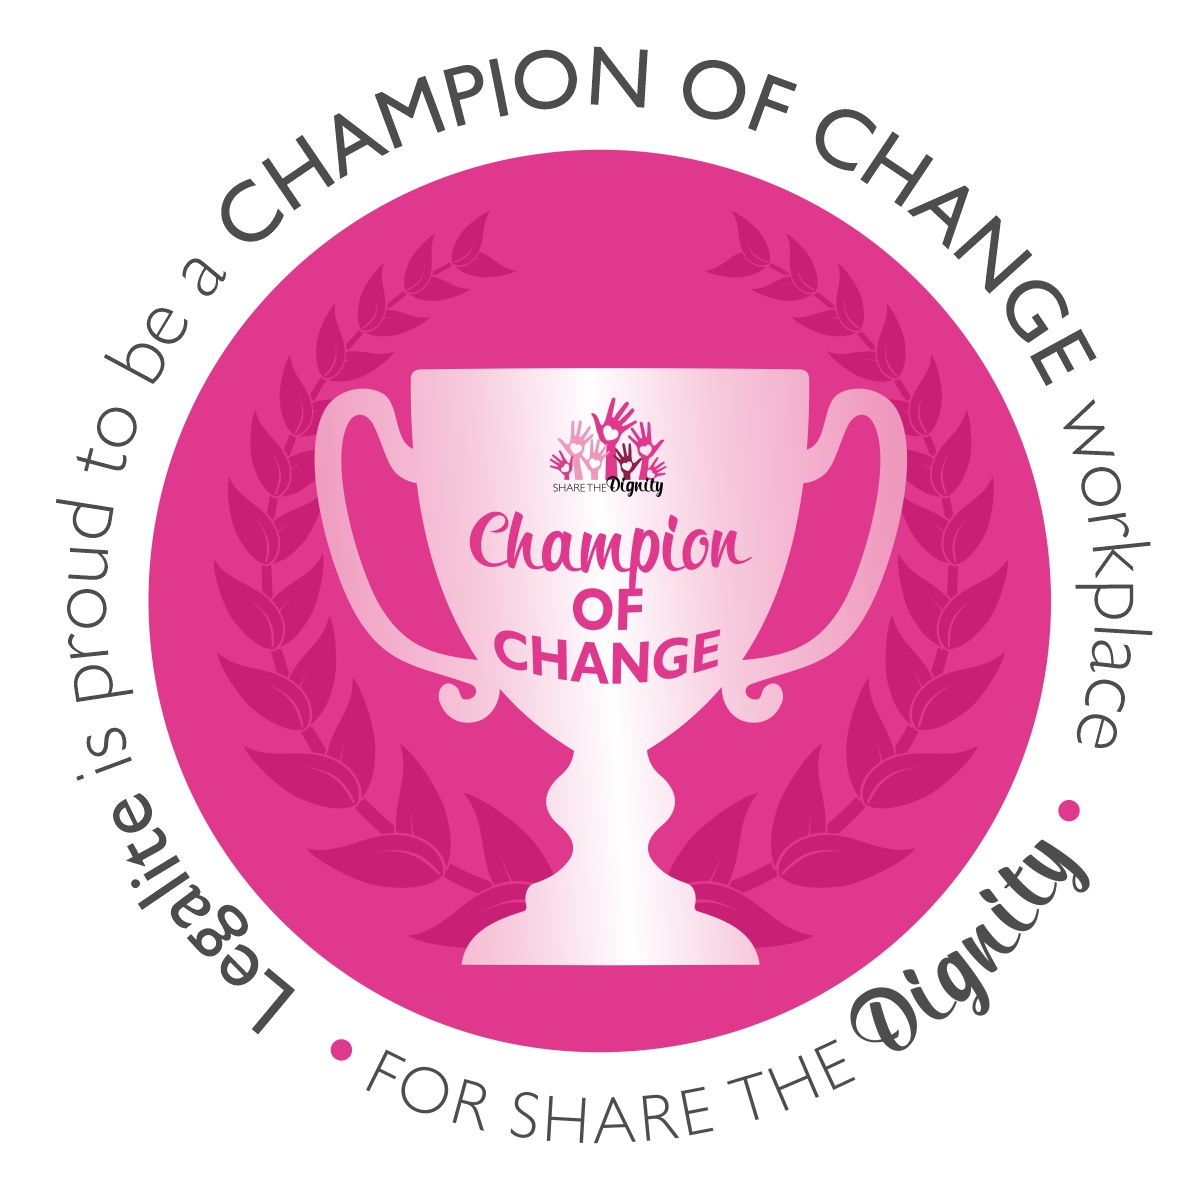 Share the Dignity Champion of Change